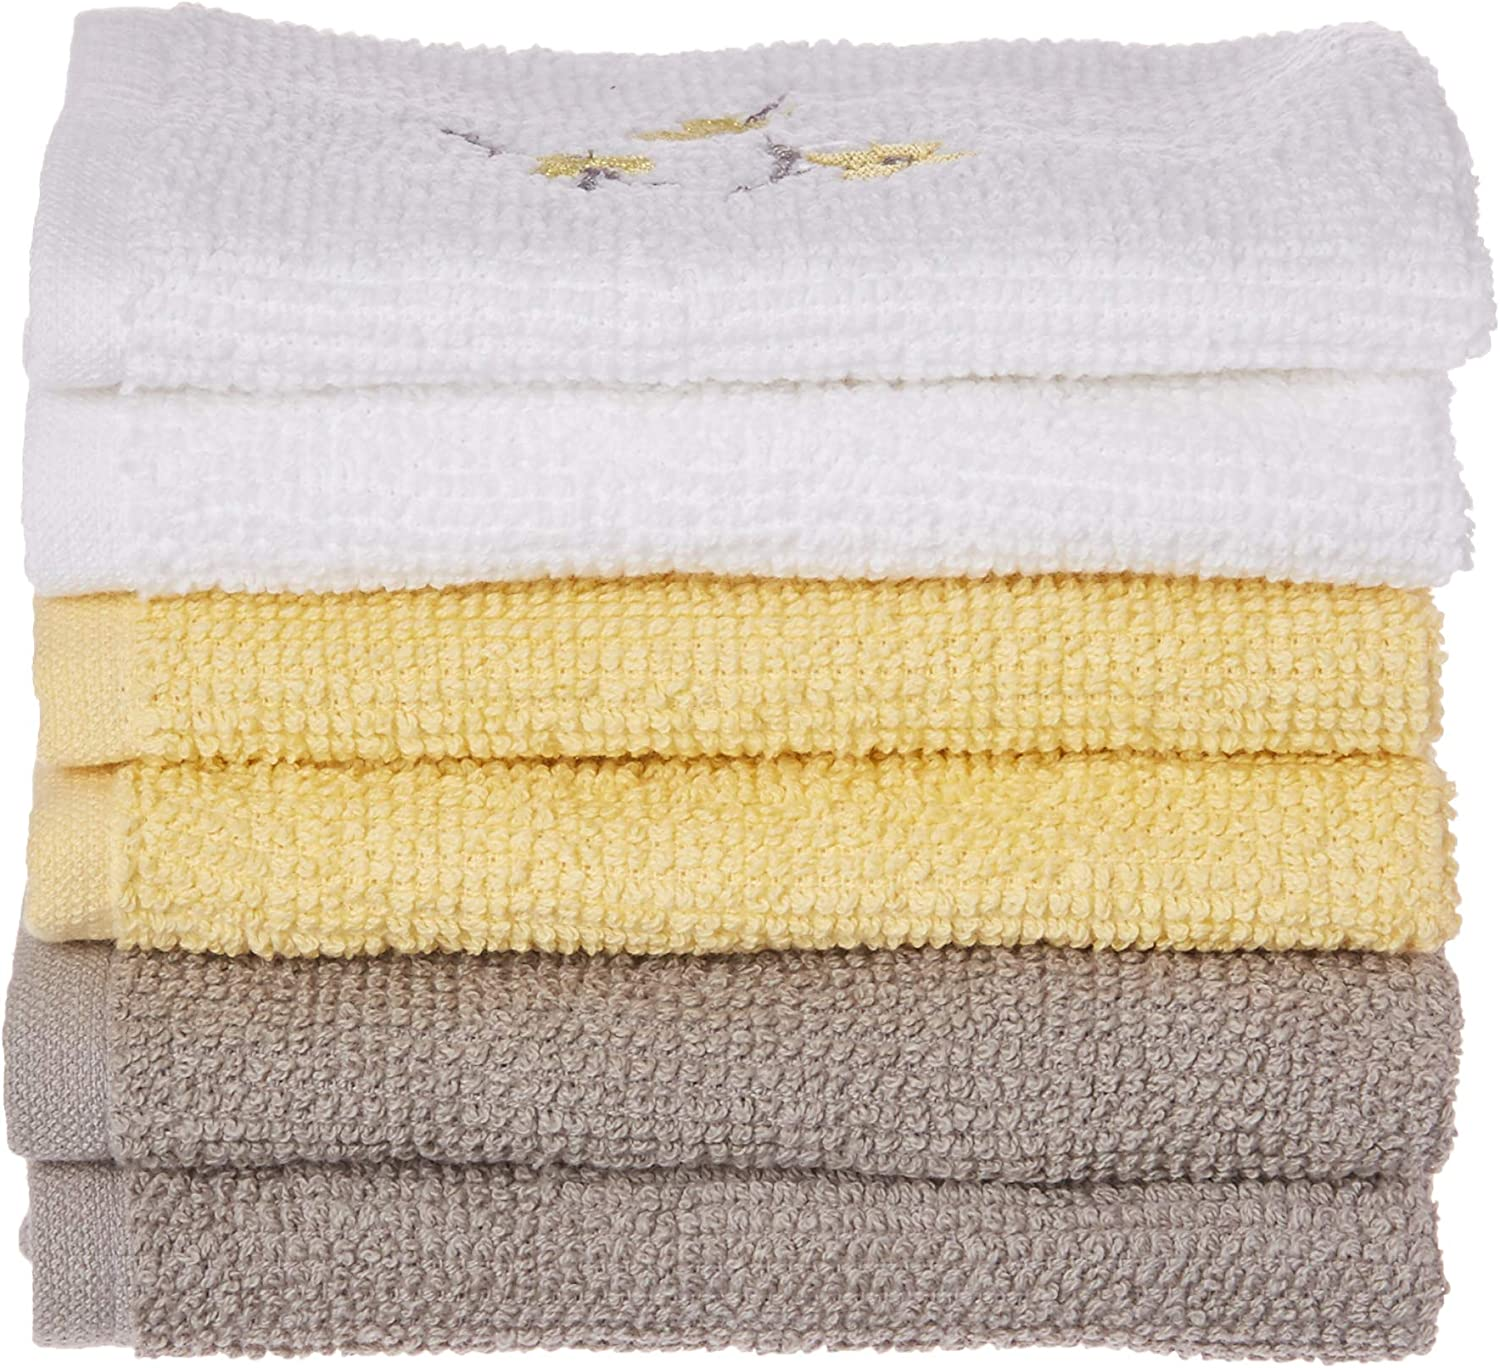 SKL Home by Saturday Knight Ltd. Spring Garden Wash Cloth Set, Multicolored, 6-Pack 6 Count